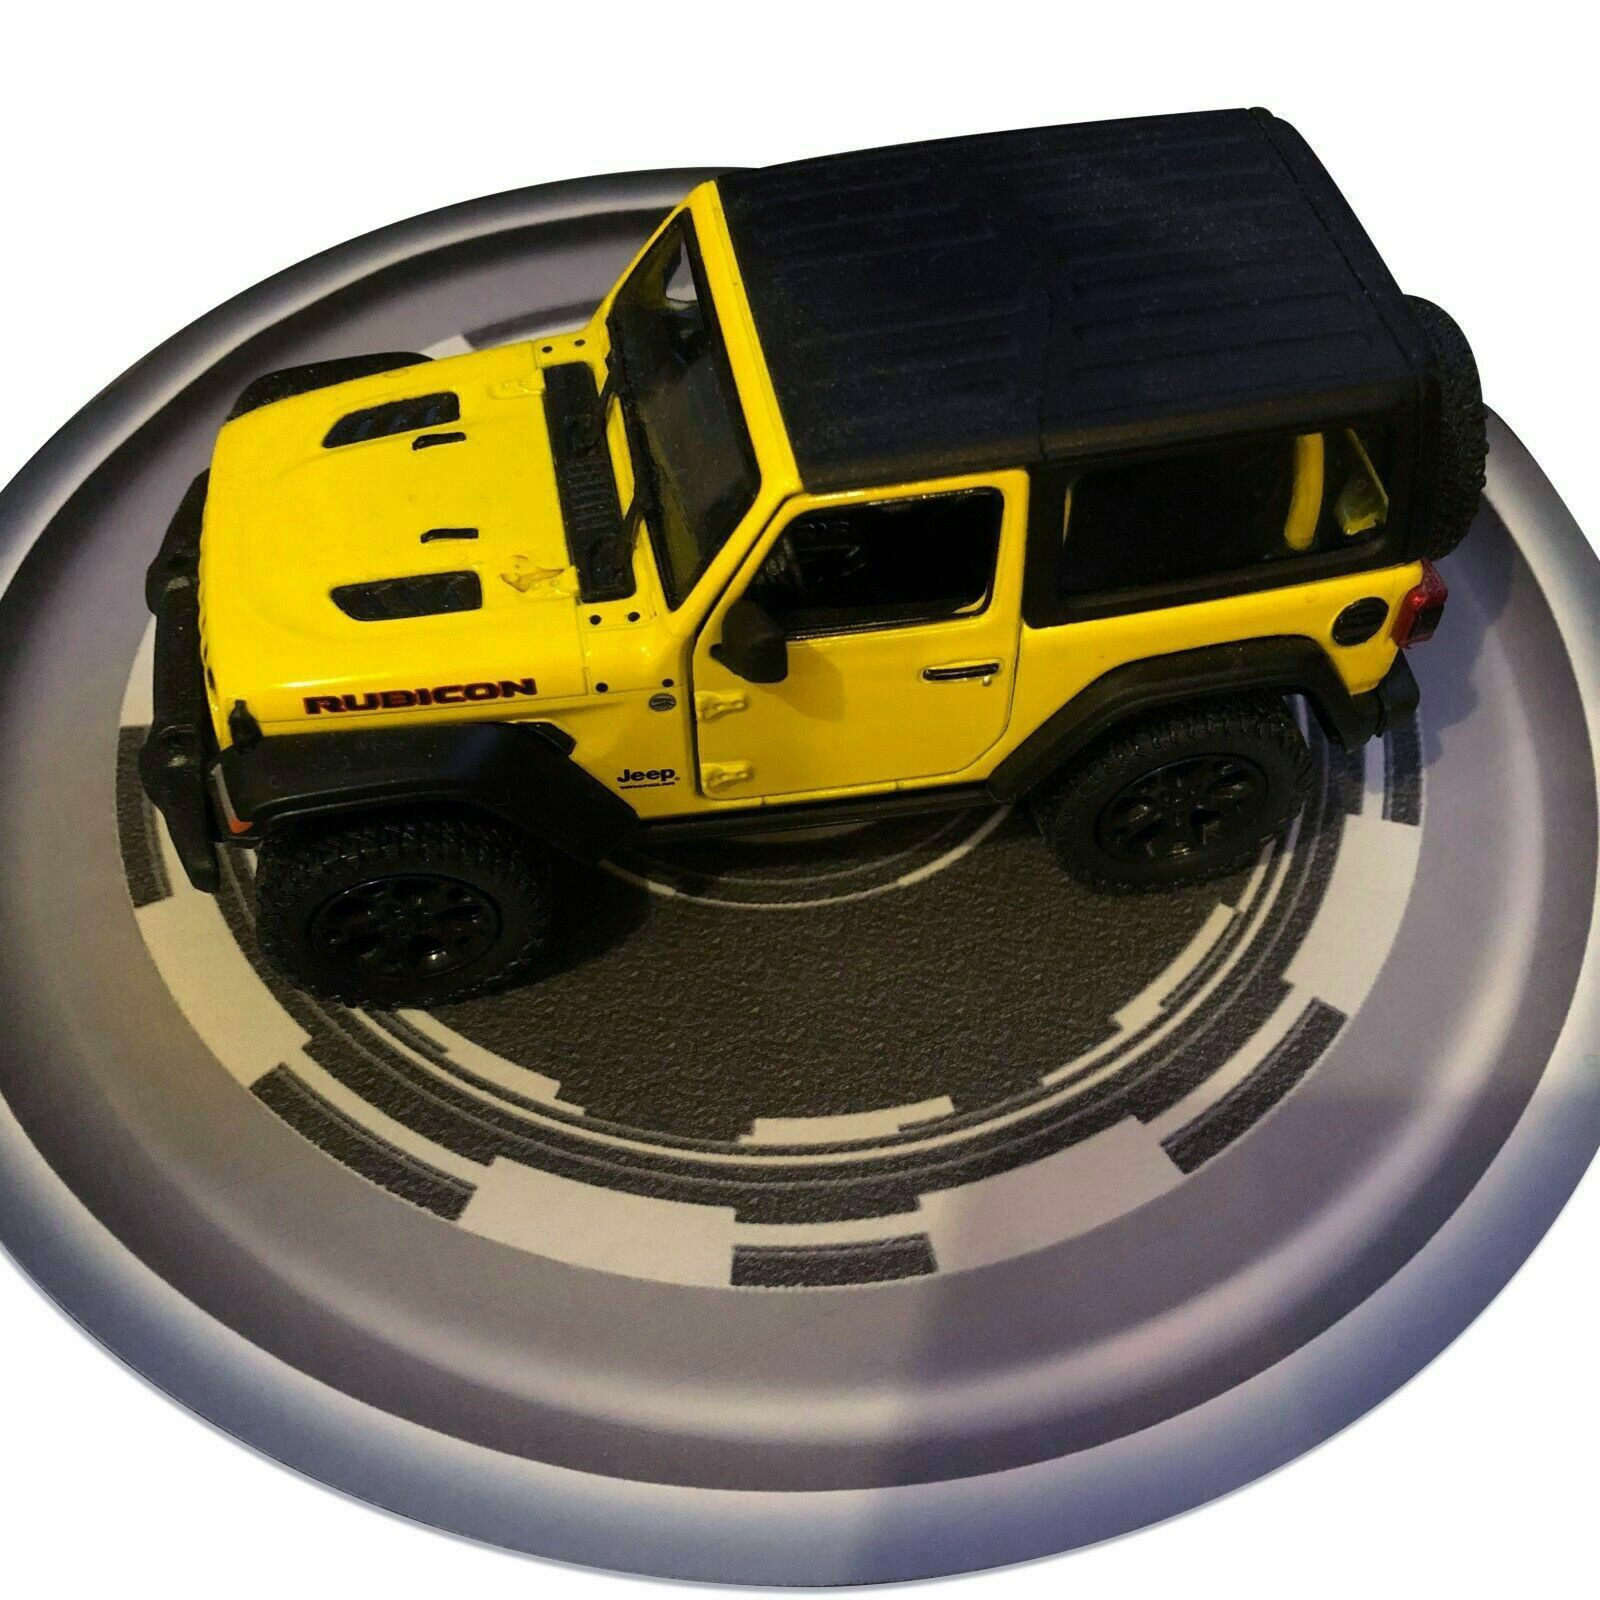 1/25 - 1/32 Scale: Turntable Model Base for Diecast Cars